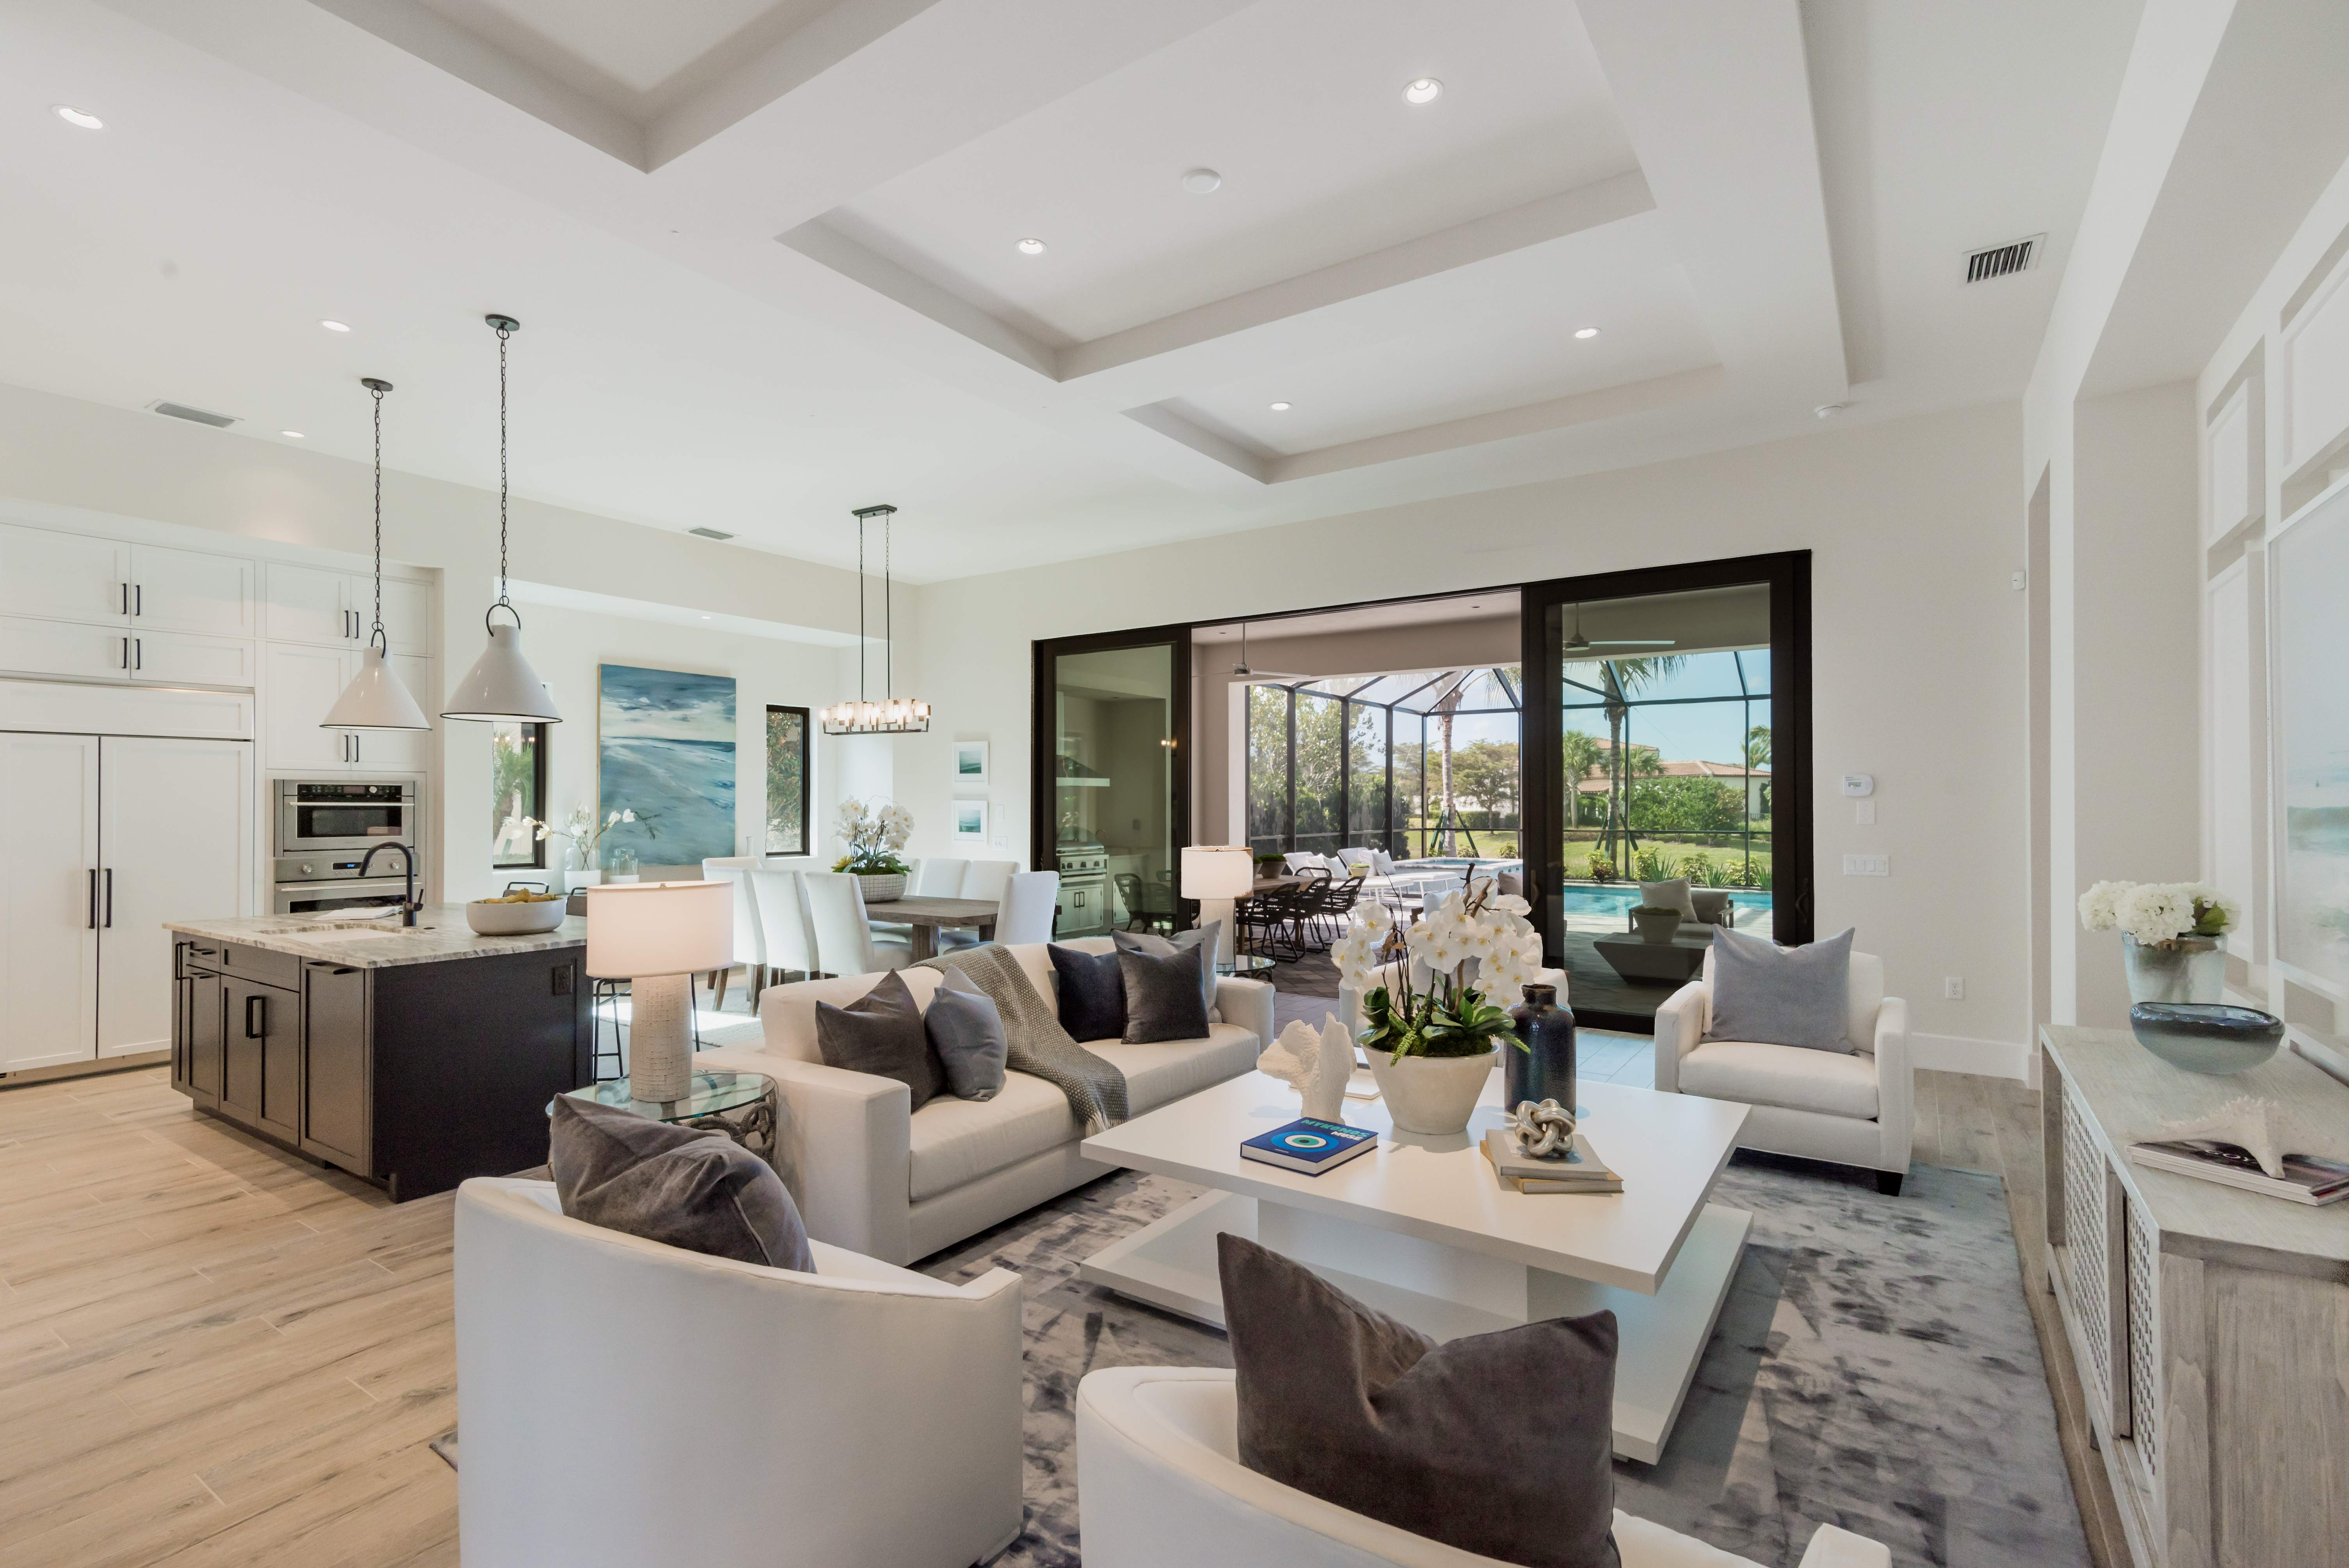 London Bay S 2020 Model Home Showcase Continues Today At Mediterra